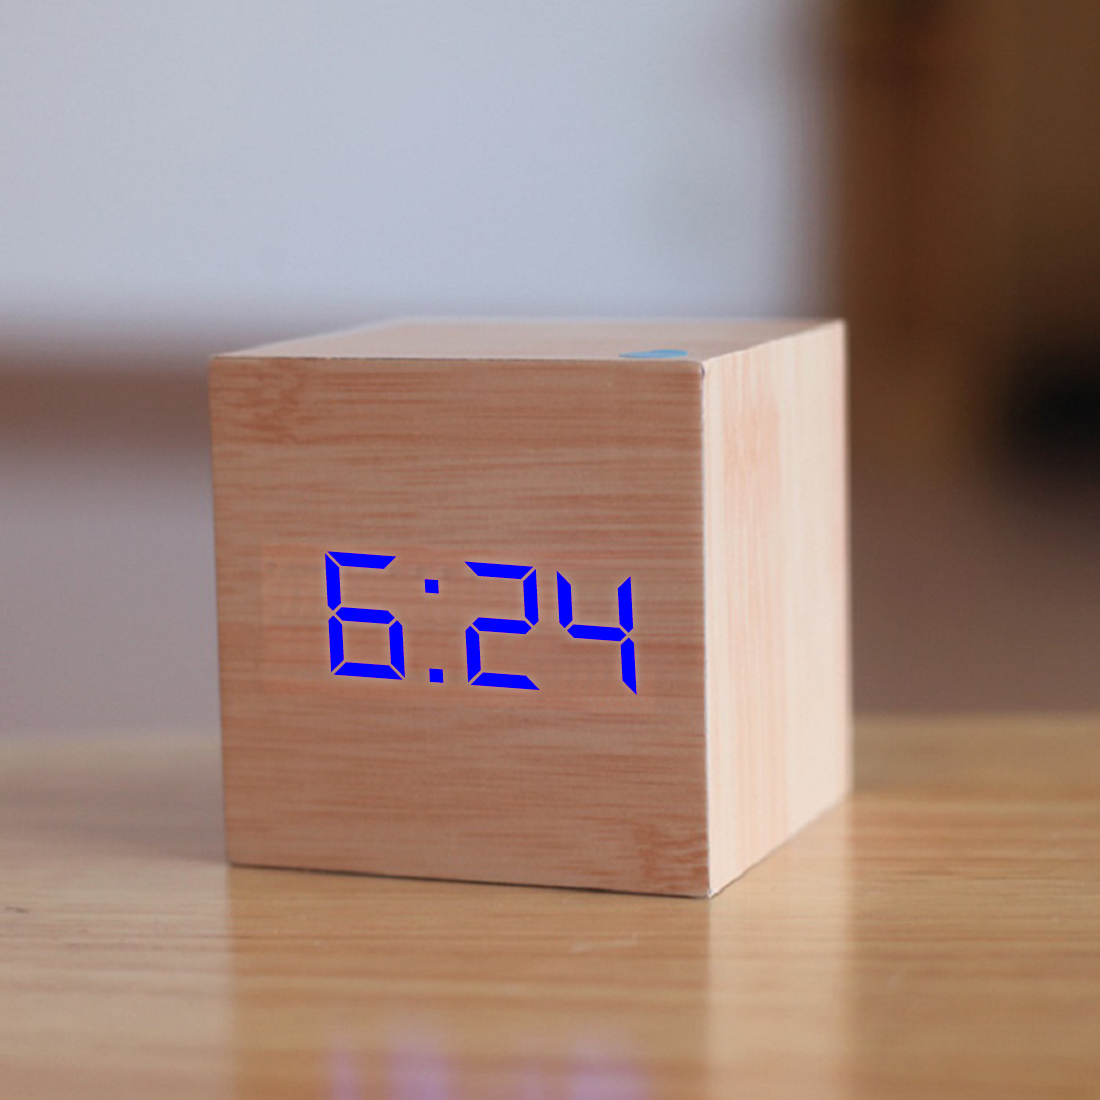 New Qualified Digital Wooden LED Alarm Clock Wood Retro Glow Clock Desktop Table Decor Voice Control Snooze Function Desk Tools in Alarm Clocks from Home Garden